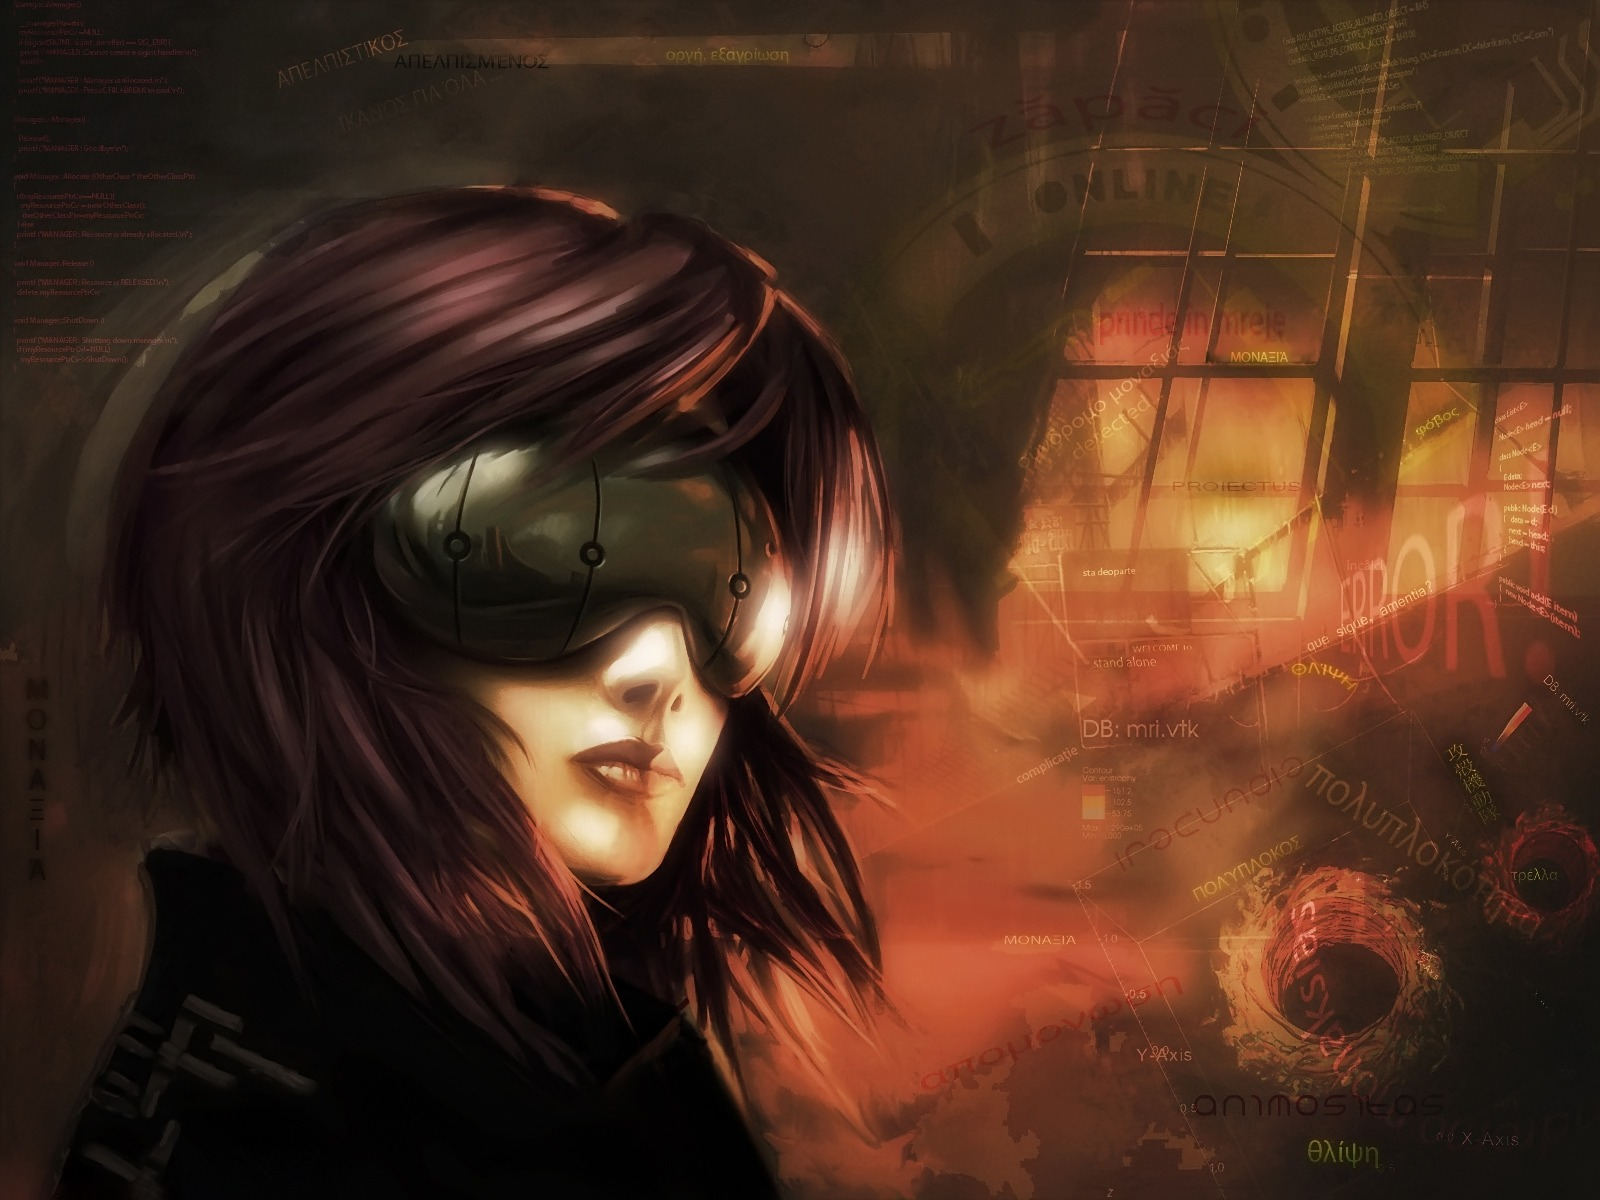 motoko wallpaper japanese characters anime animated wallpapers in